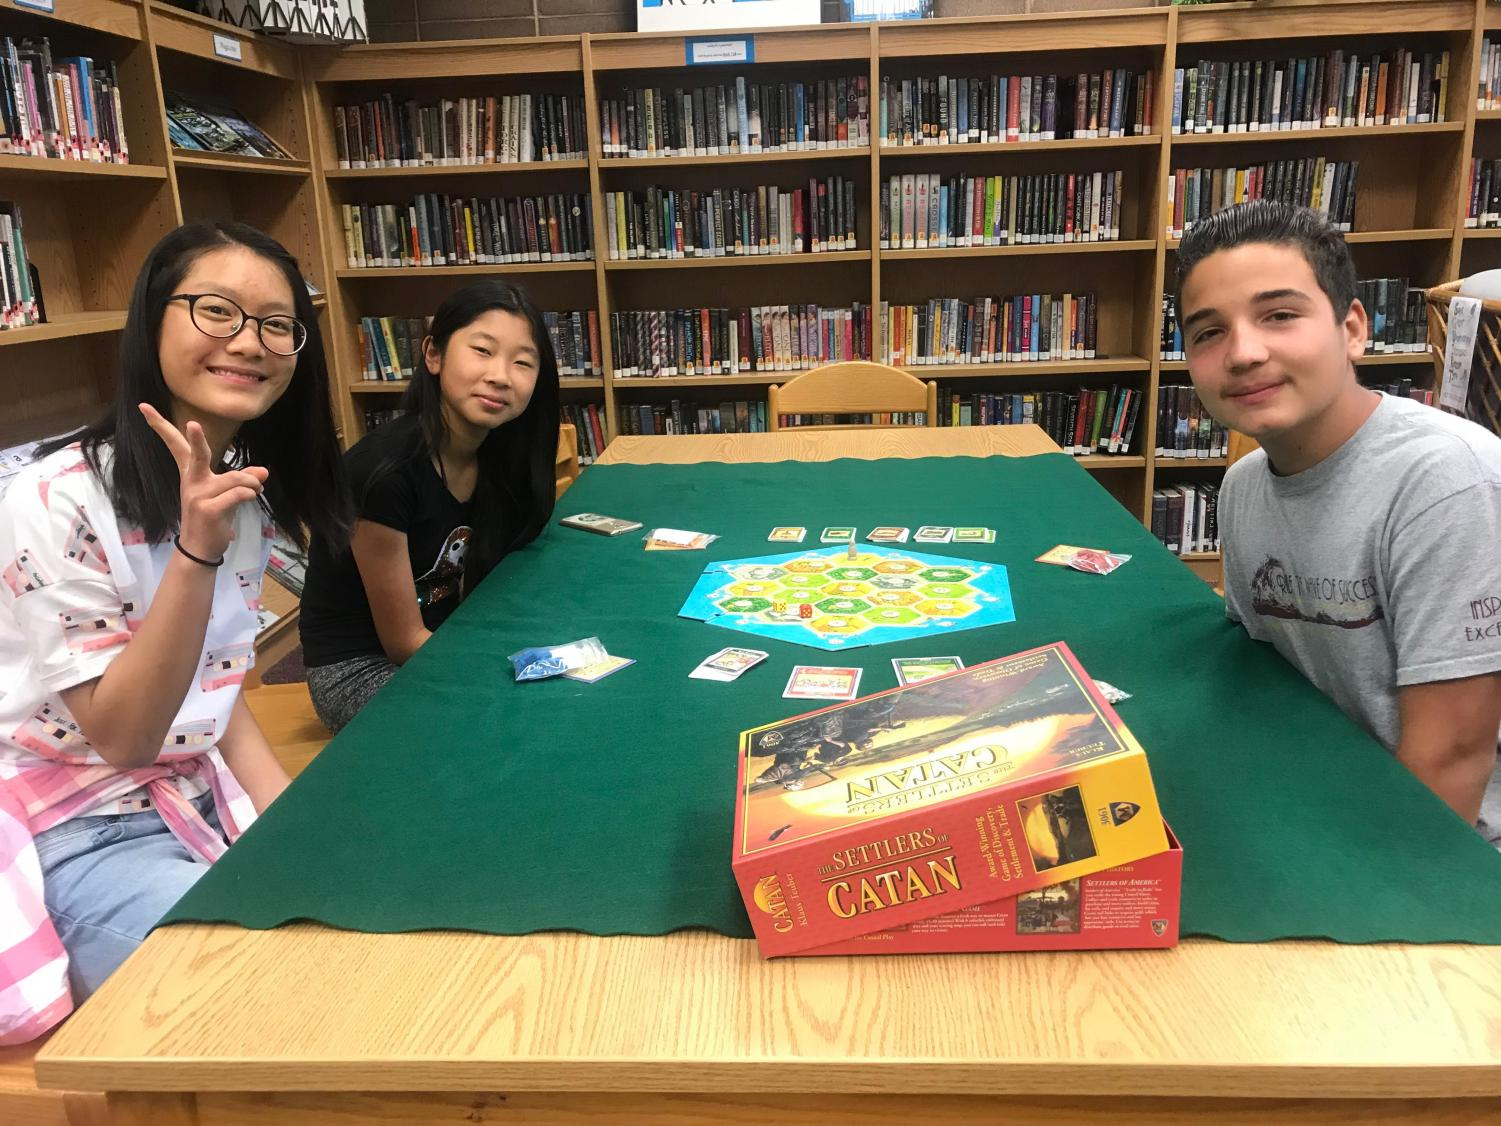 Hong Shui (Left), Kerry Wang (Far Left), and Farid Fred Sawaya (Right) are all enjoying a game of Catan.